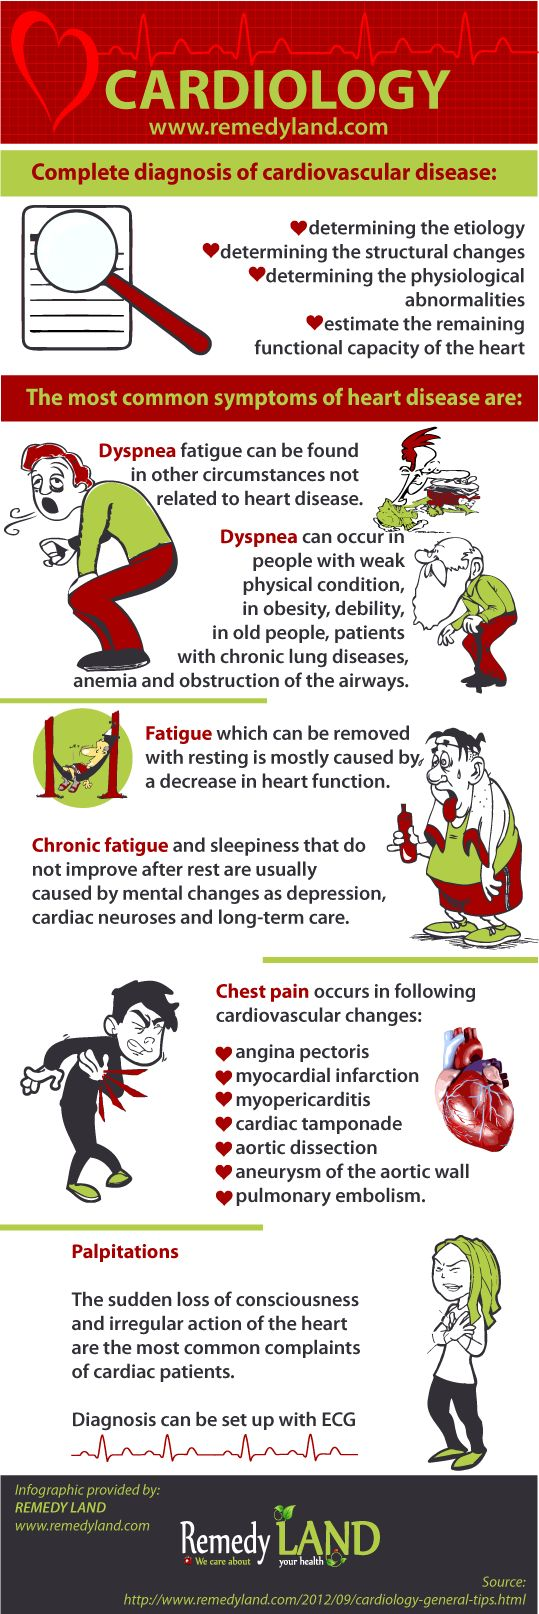 http://www.remedyland.com/2012/09/cardiology-general-tips.html Cardiology: General Tips It is important to see your doctor so that you can obtain a correct diagnosis and punctual remedy. #HeartDisease ========================== Warning to all scrapers, do not change source of infographics and do not try to modify infographics, we are going to put your pin down and take further legal actions.